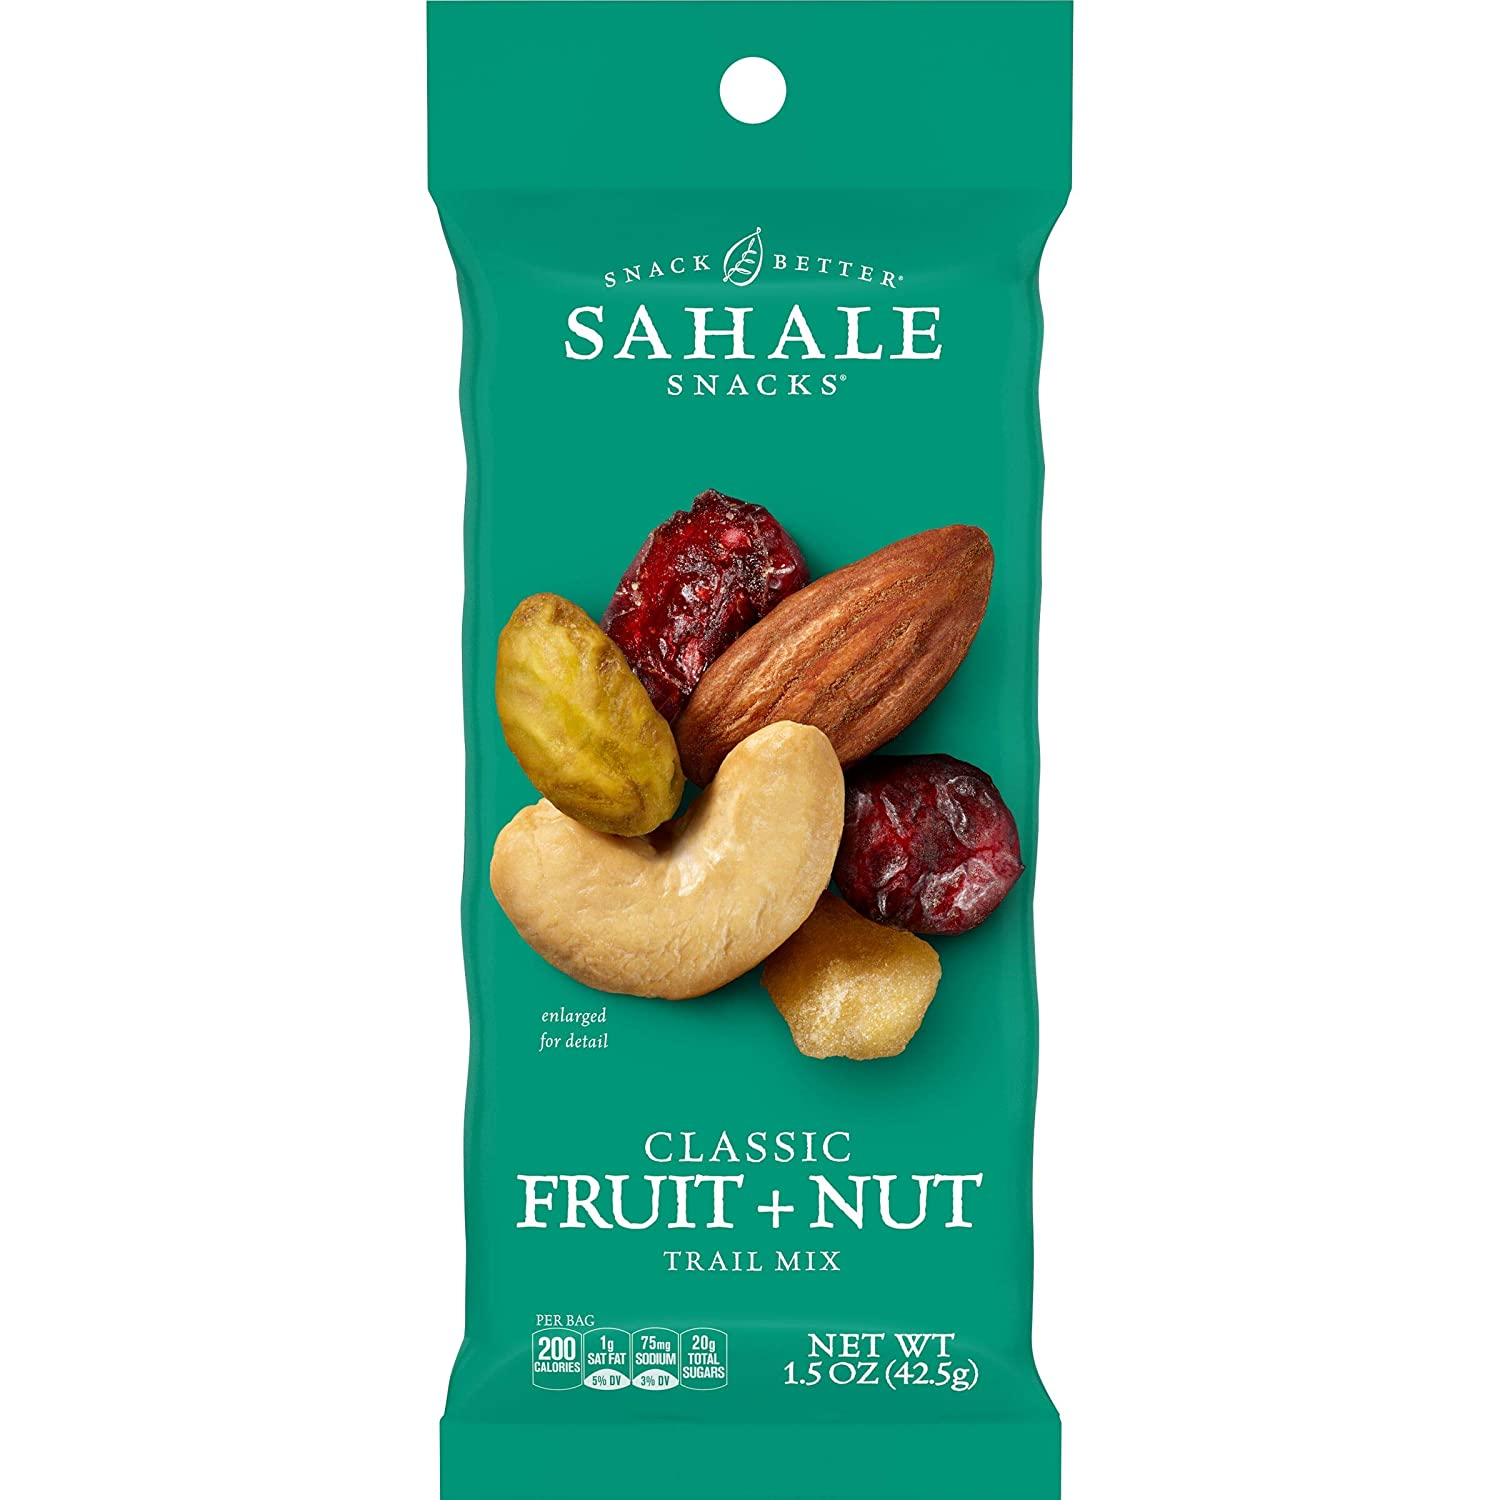 Sahale Snacks Classic Fruit and Nut Trail Mix, 1.5 Ounces (Pack of 9)